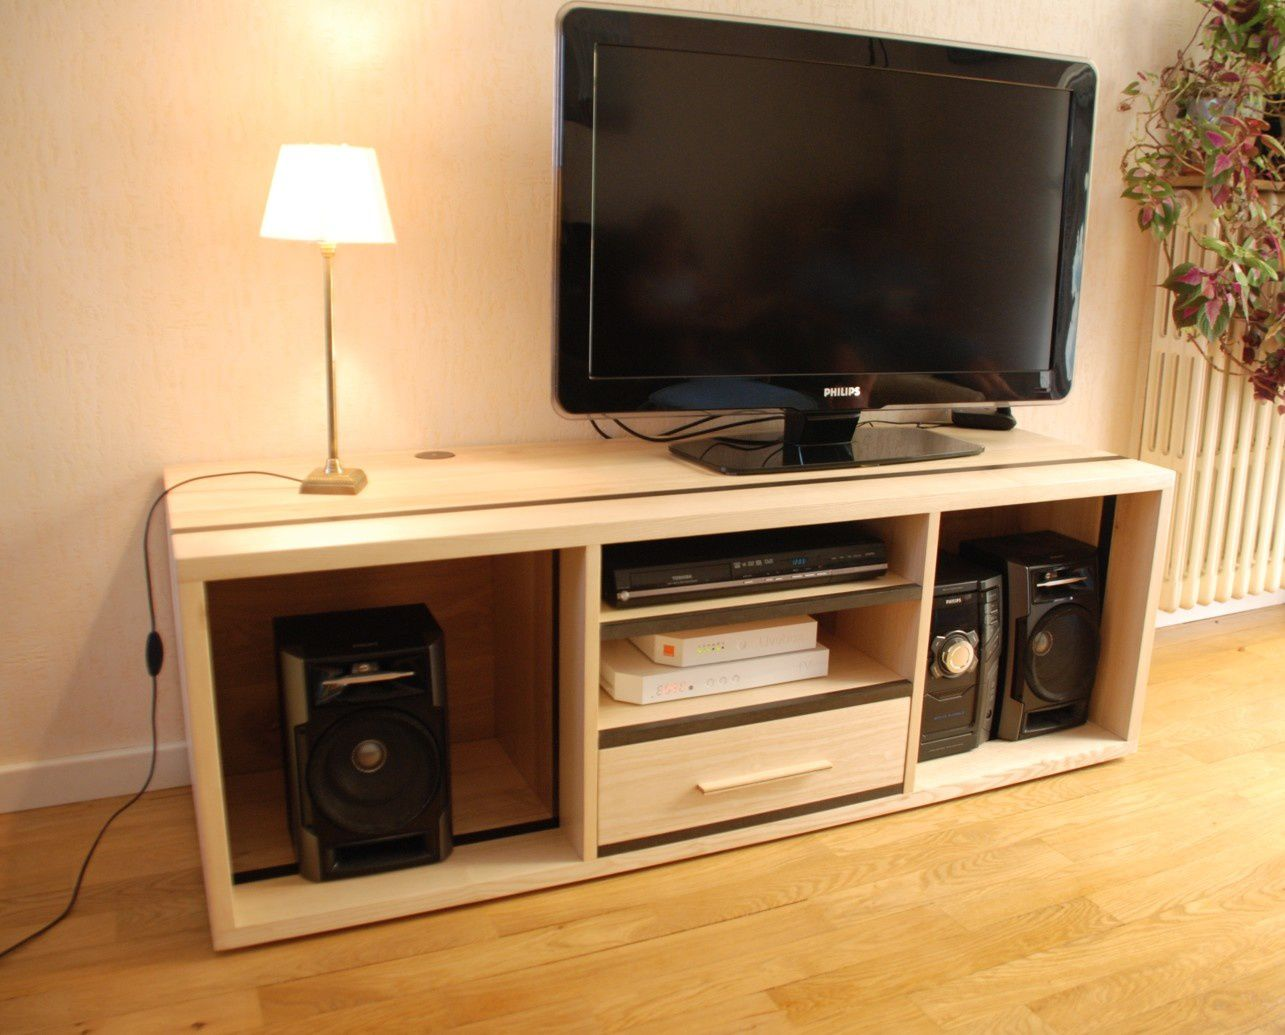 Album meuble tv hifi contemporain atelier pourquoi pas mobilier design - Meubles tv contemporain ...